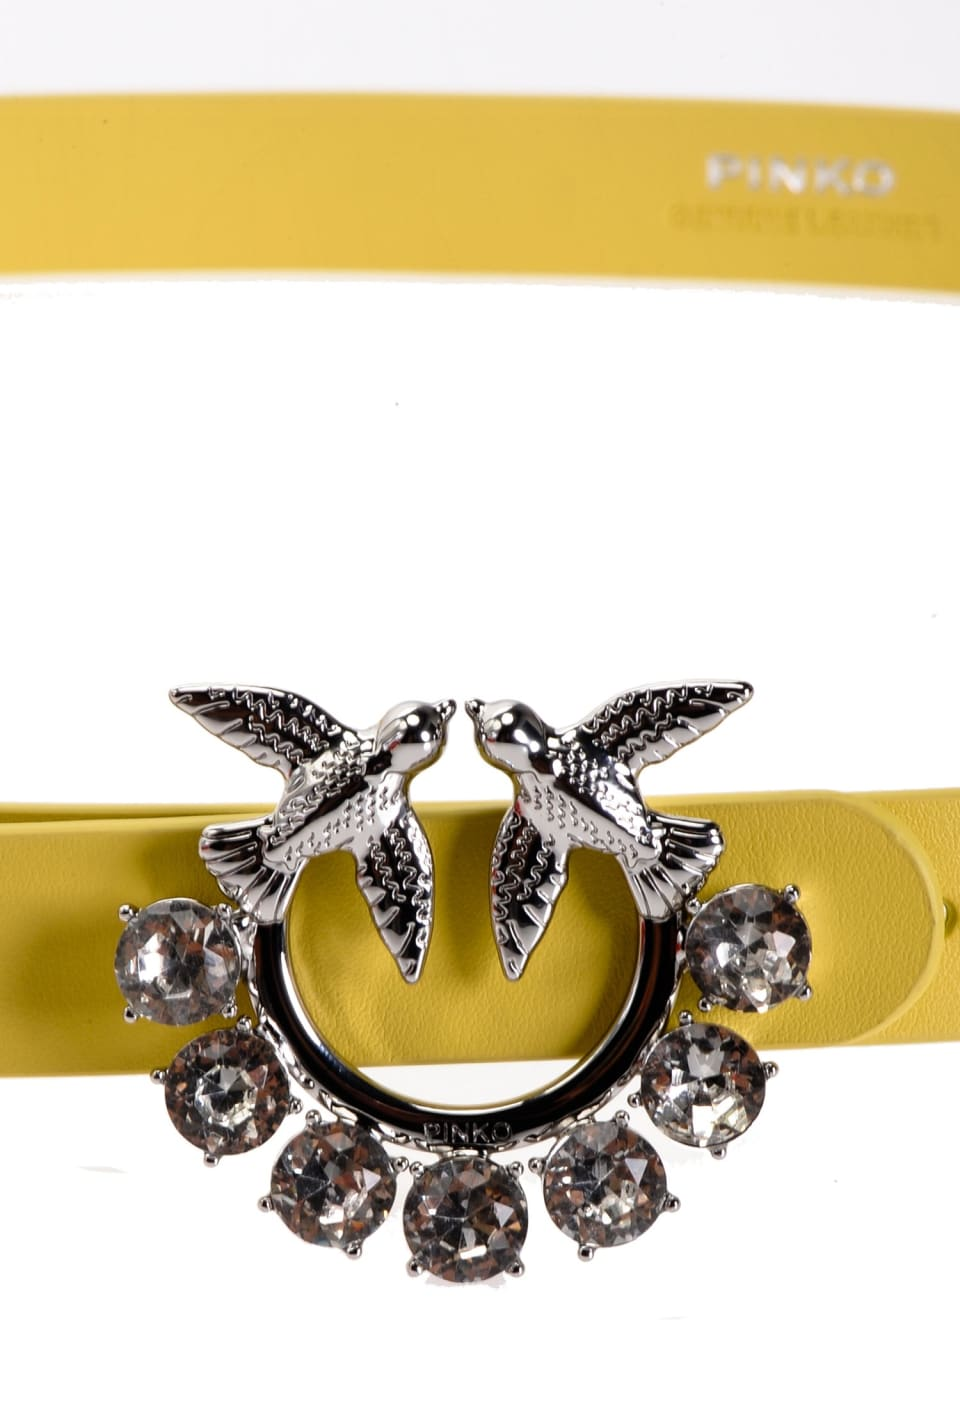 Narrow belt with jewel Love Birds buckle